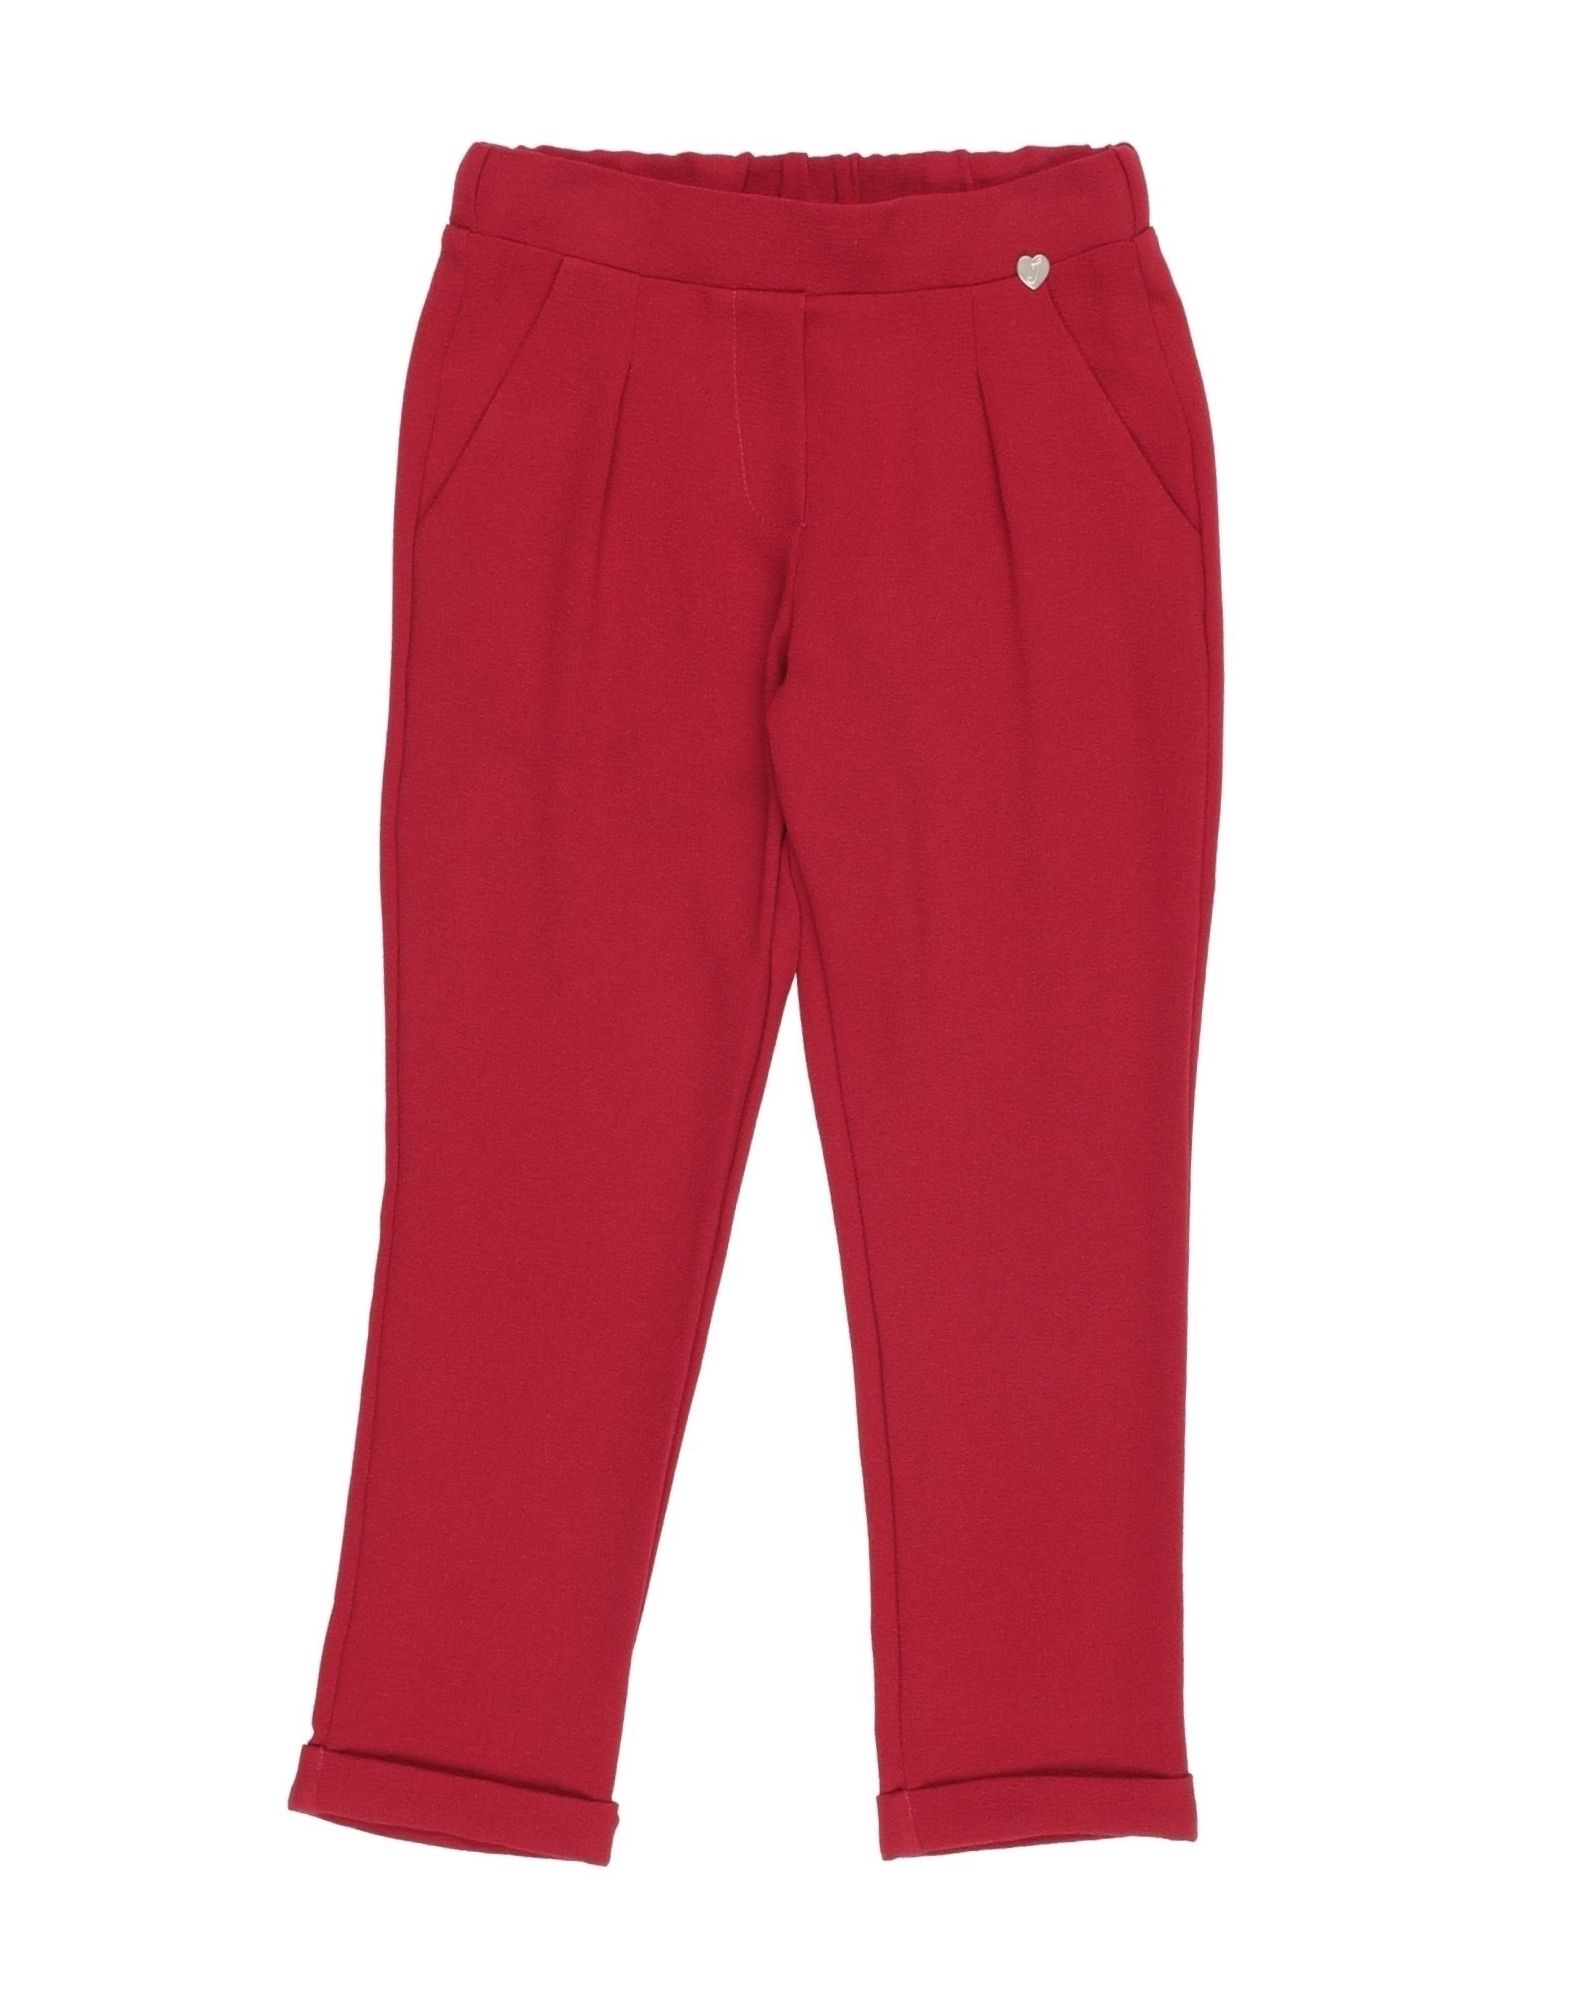 Illudia Kids' Casual Pants In Red